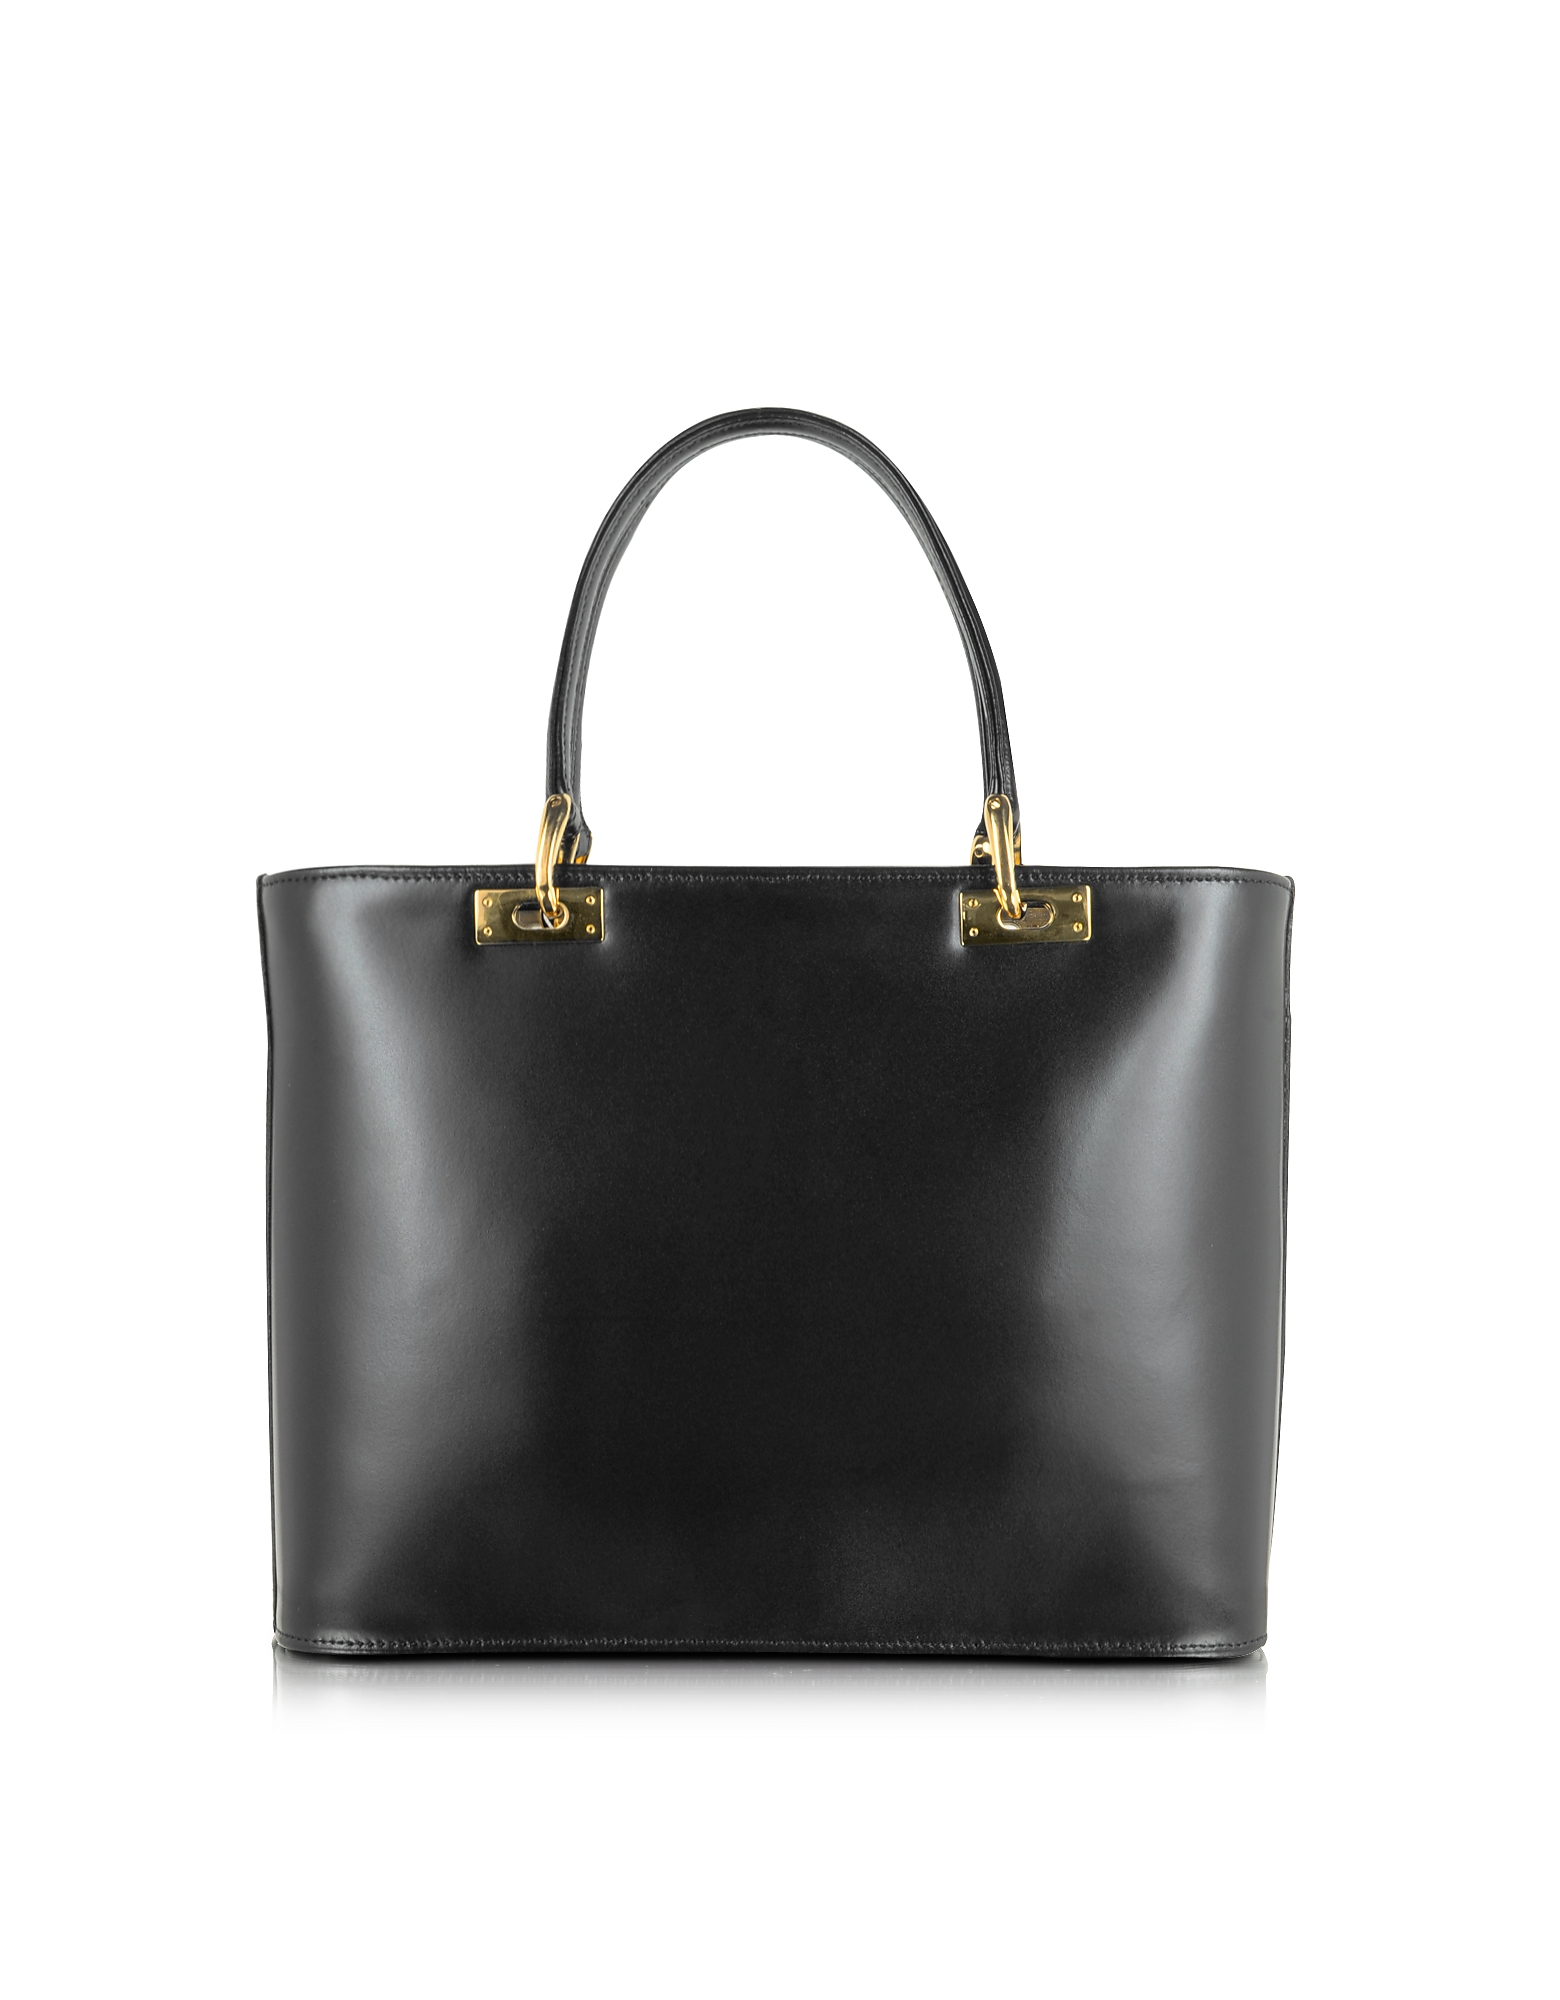 Polished Black Leather Tote Handbag